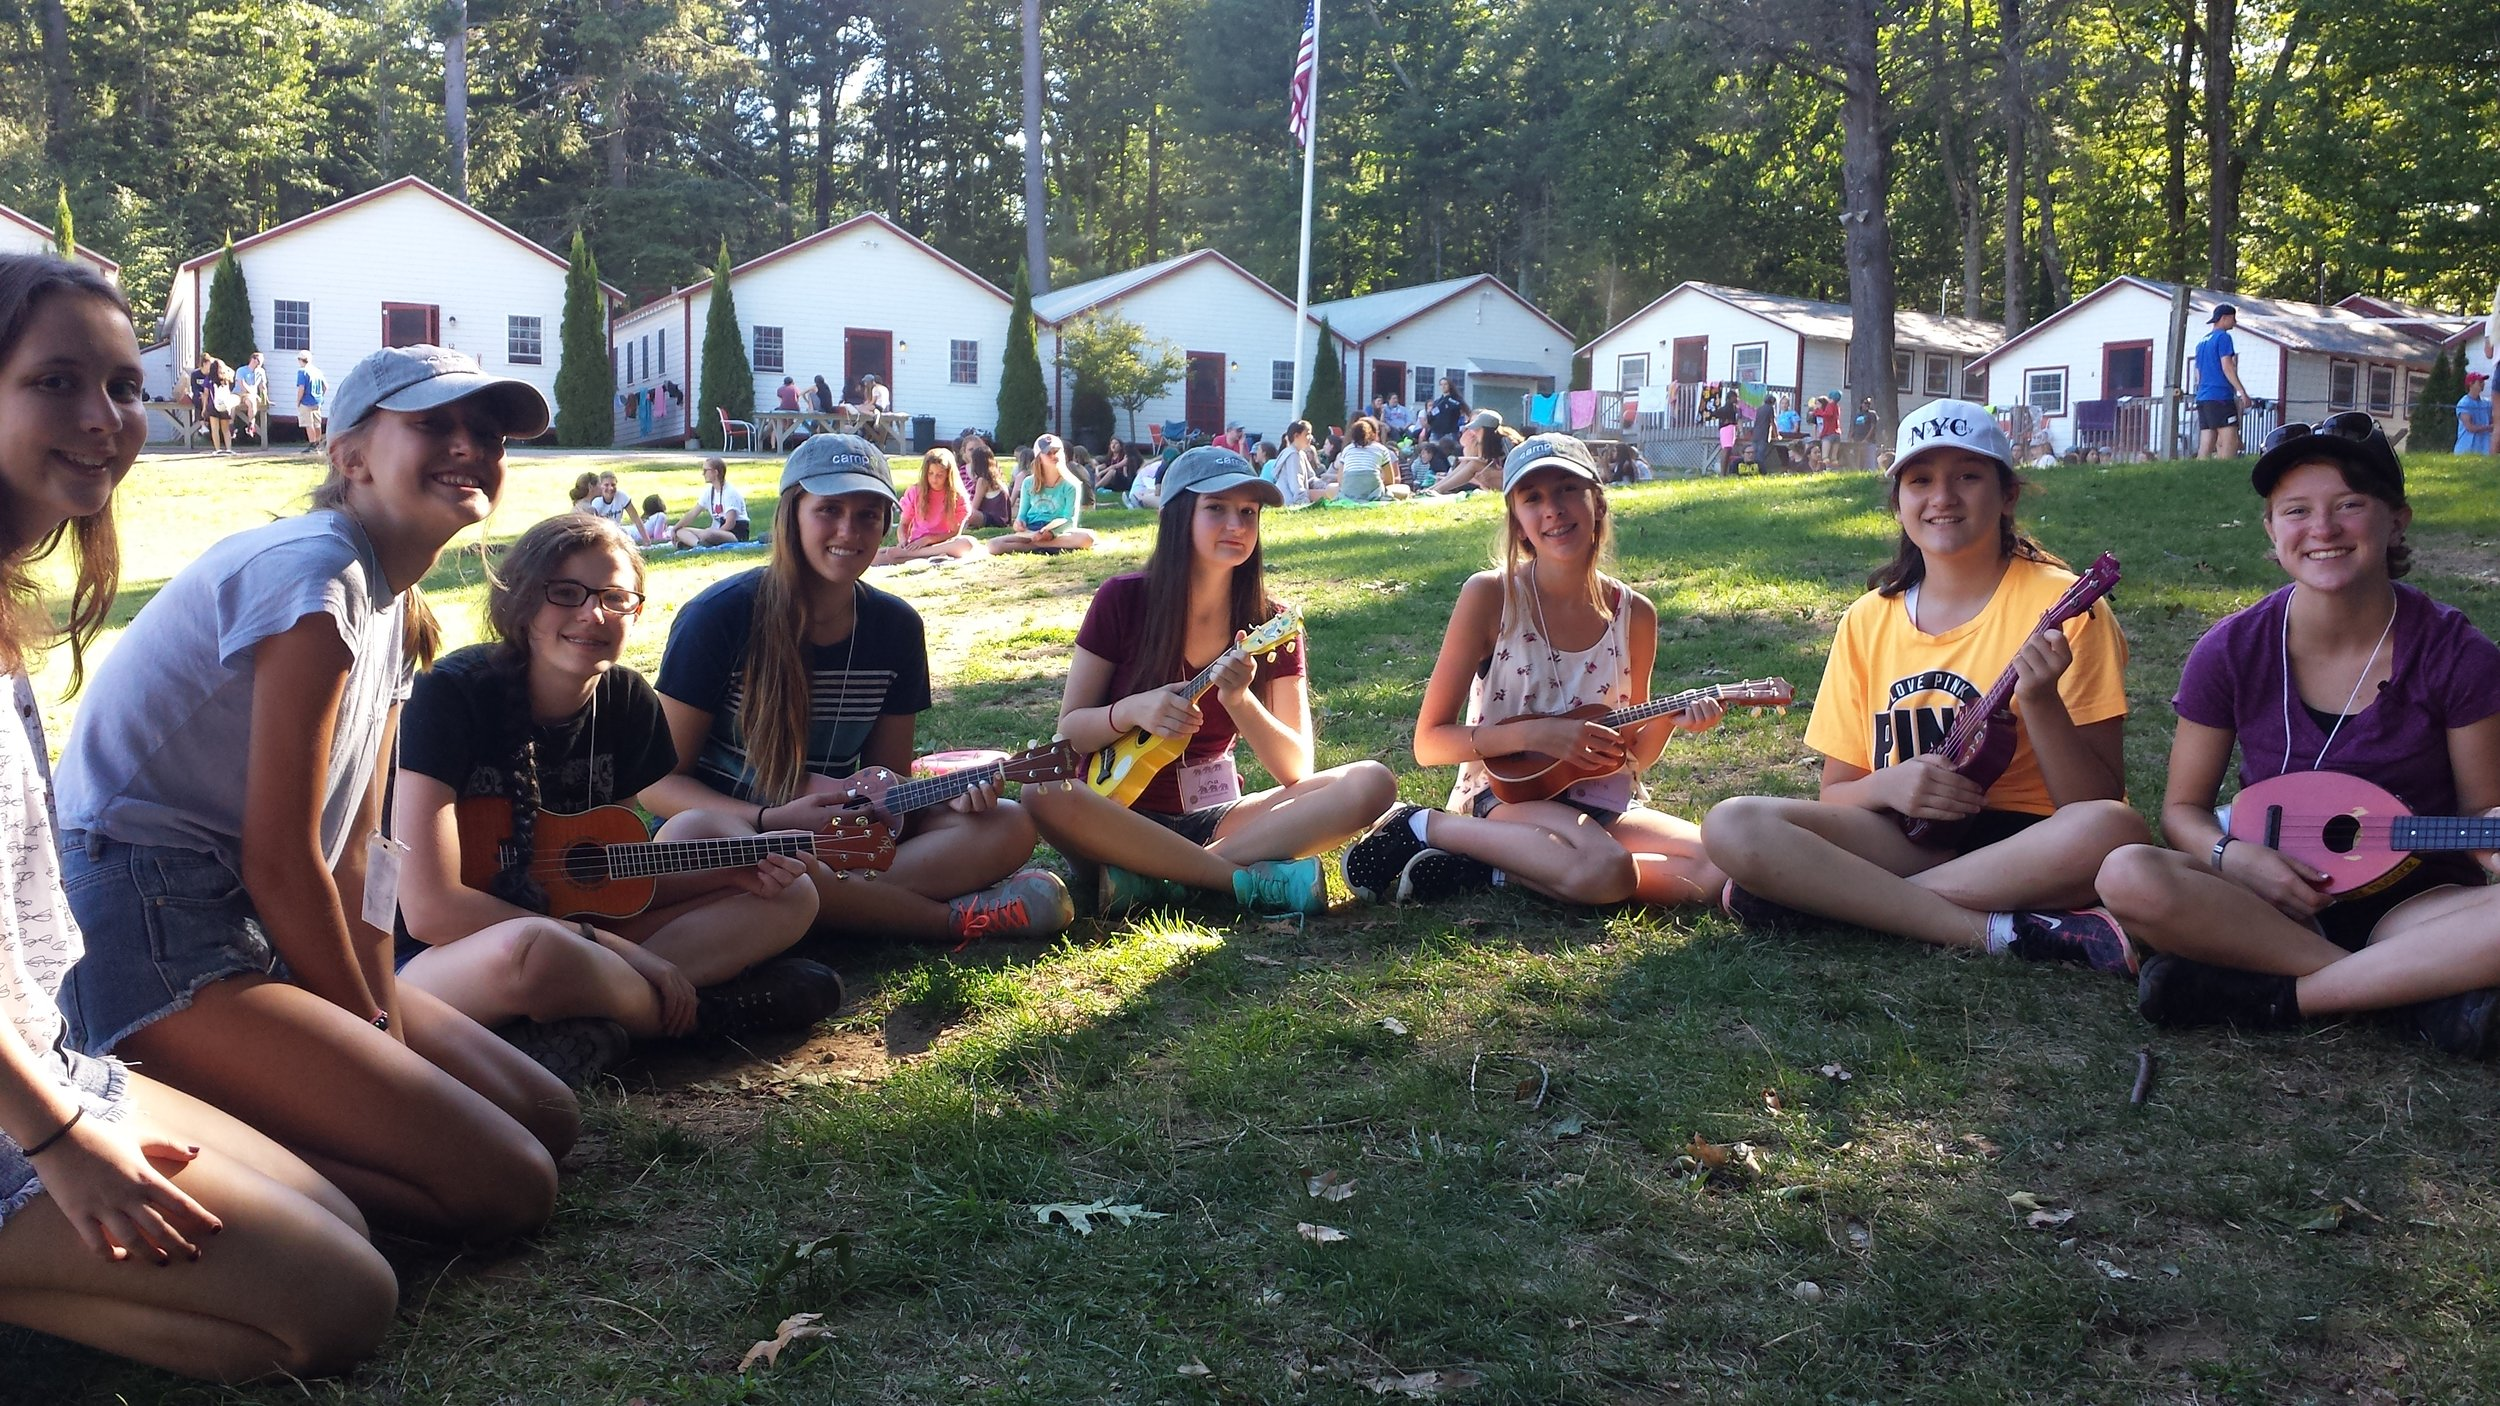 A few of the campers and all of the ukuleles!